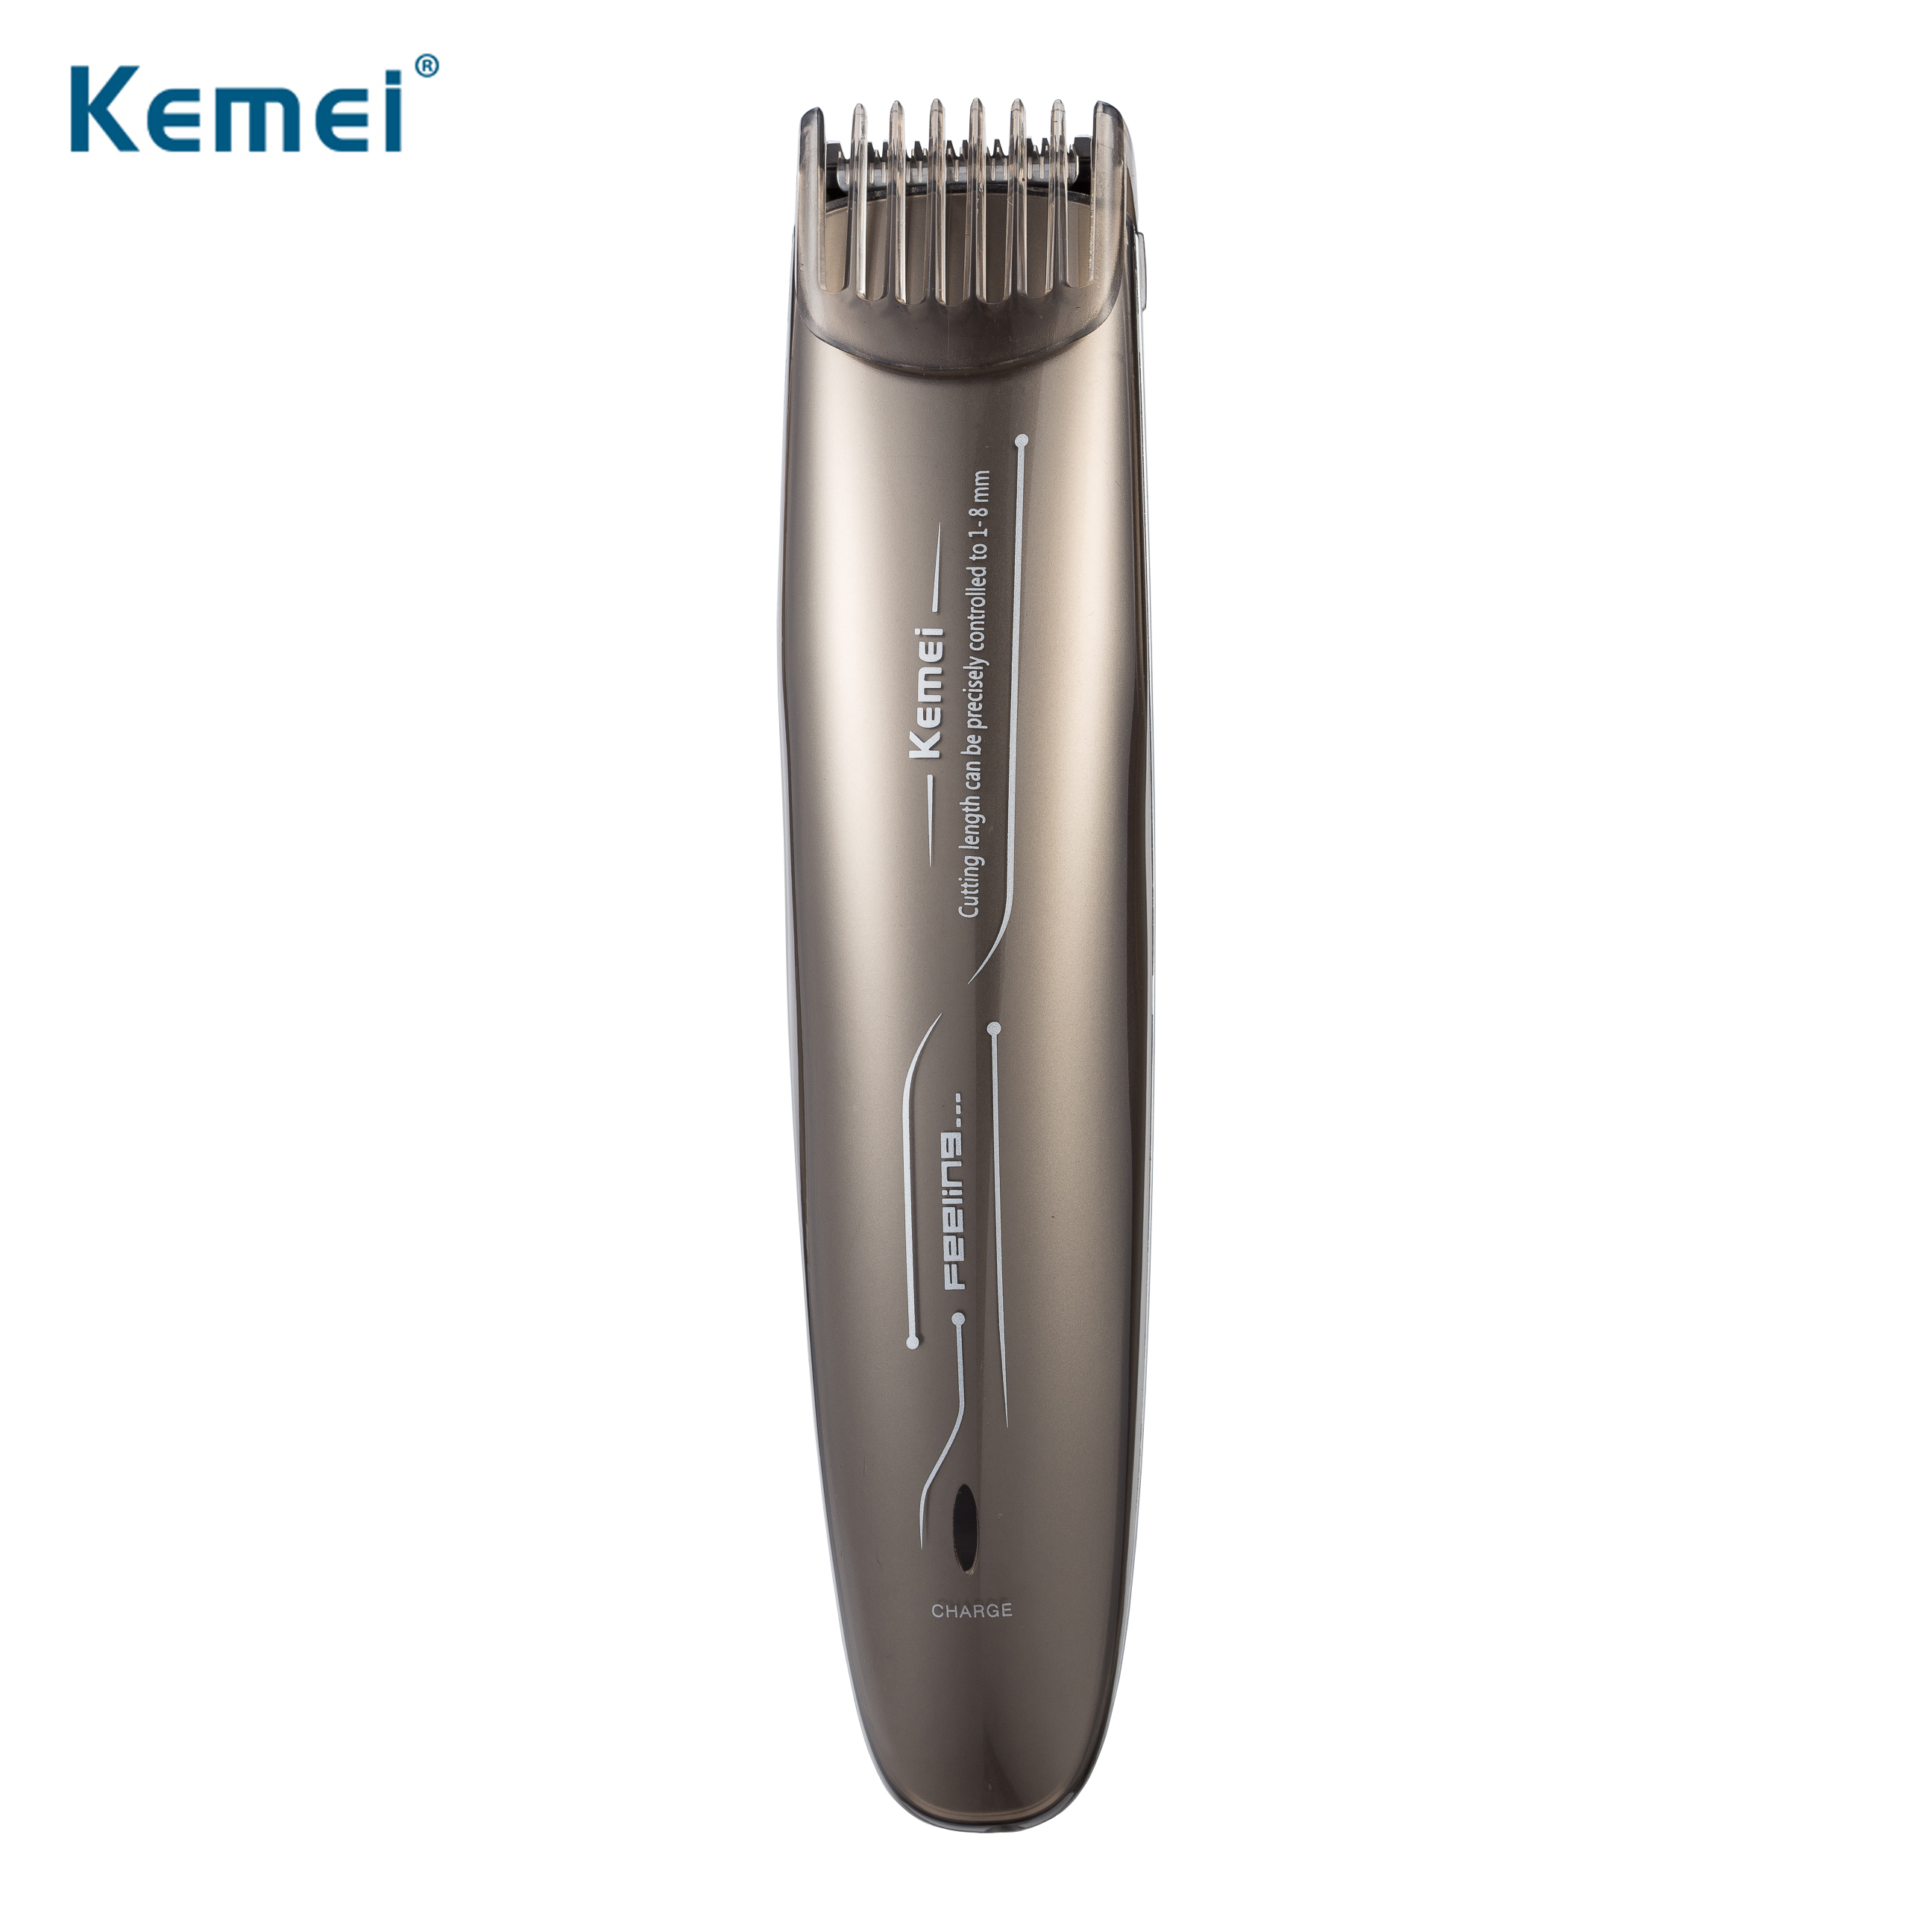 kemei clipper rechargeable hair trimmer hair cutting beard trimmer electric razor hair shaving machine electric shaver for man kemei rechargeable electric children s hair trimmer razor shaving for child hair cutting 9801 professional shaving machine